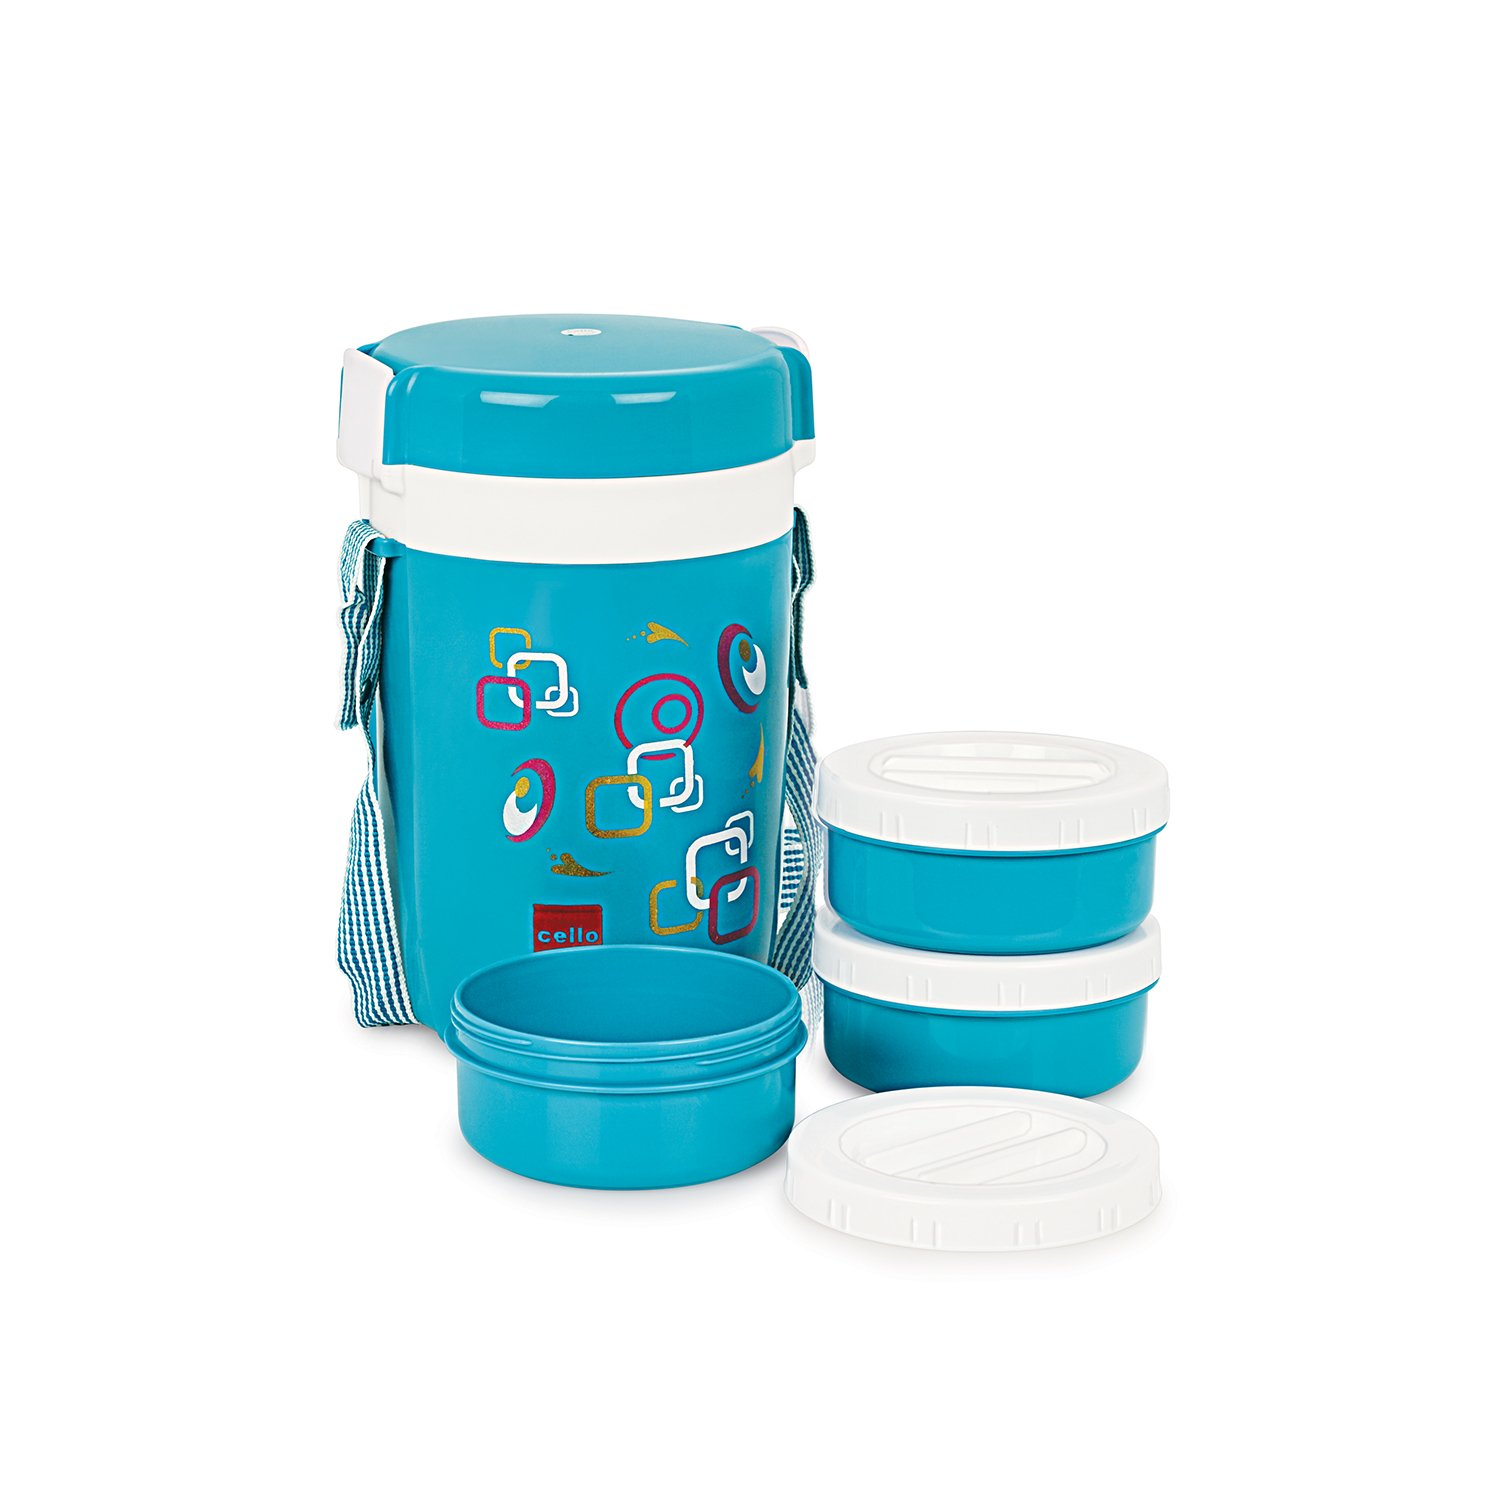 Cello Super Executive Insulated 3 Container Lunch Carrier, Blue low price